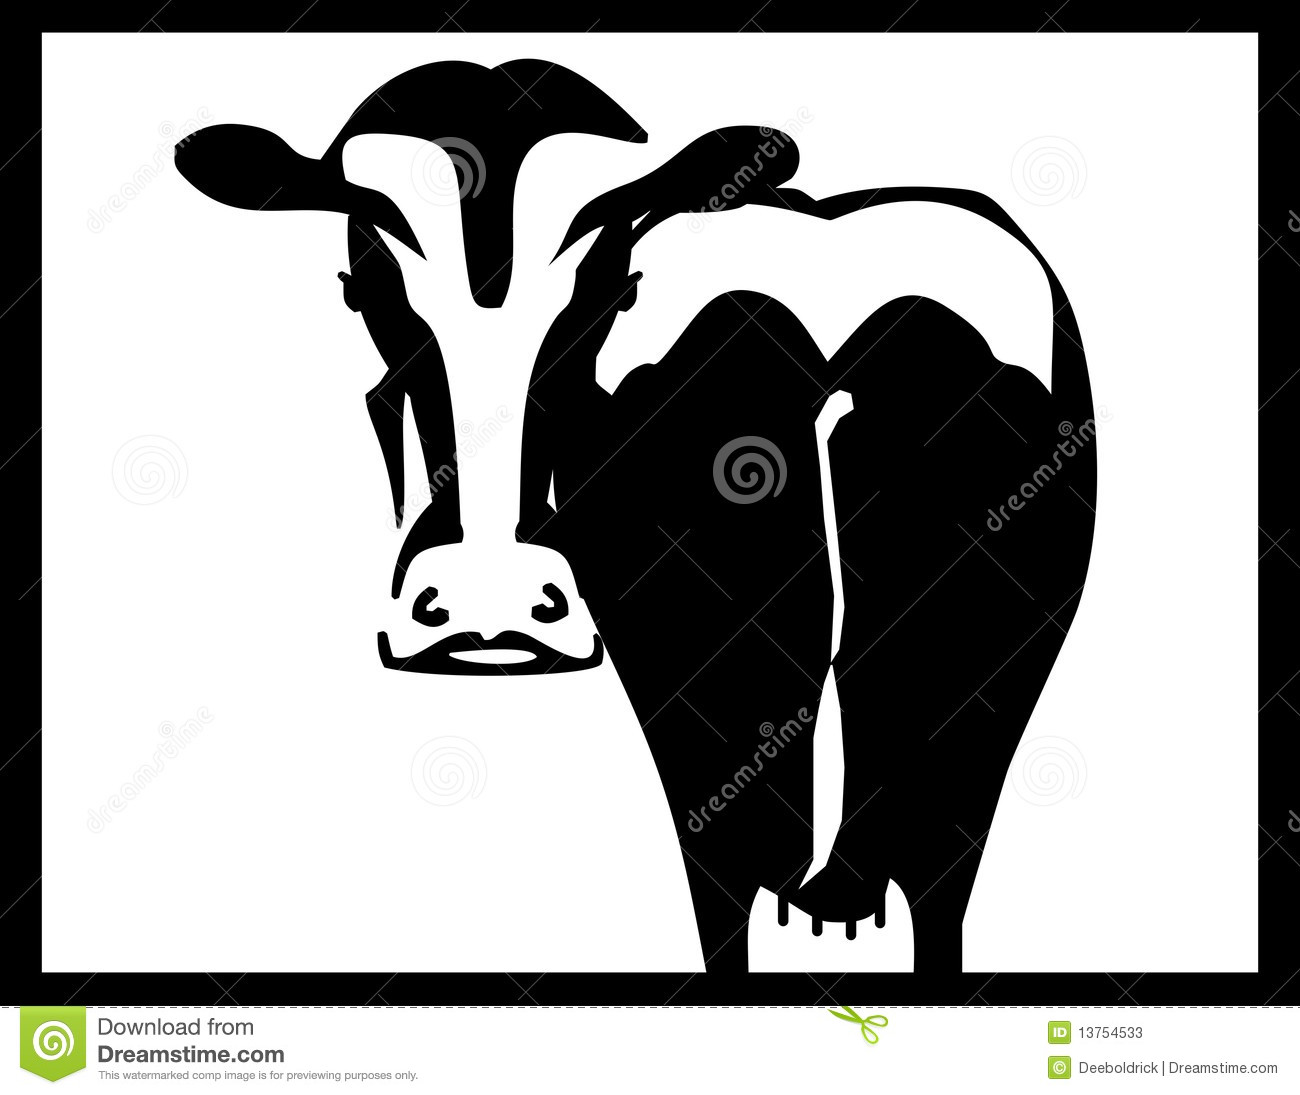 Black and white cow silhouette with black border.